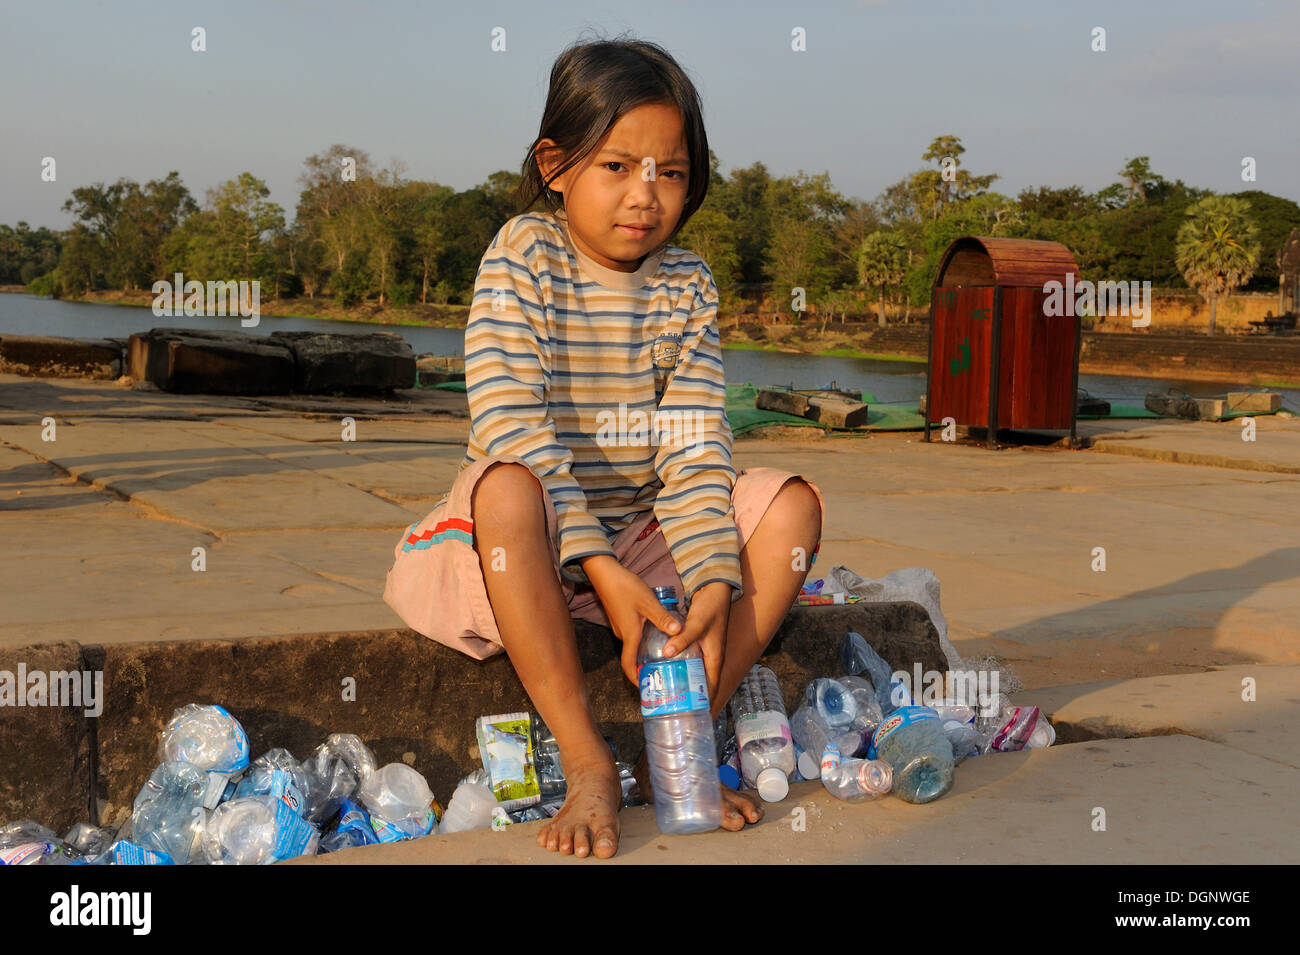 Girl collecting empty water bottles left by tourists and squashing them to earn money, in front of the Angkor Wat, Siam Reap - Stock Image